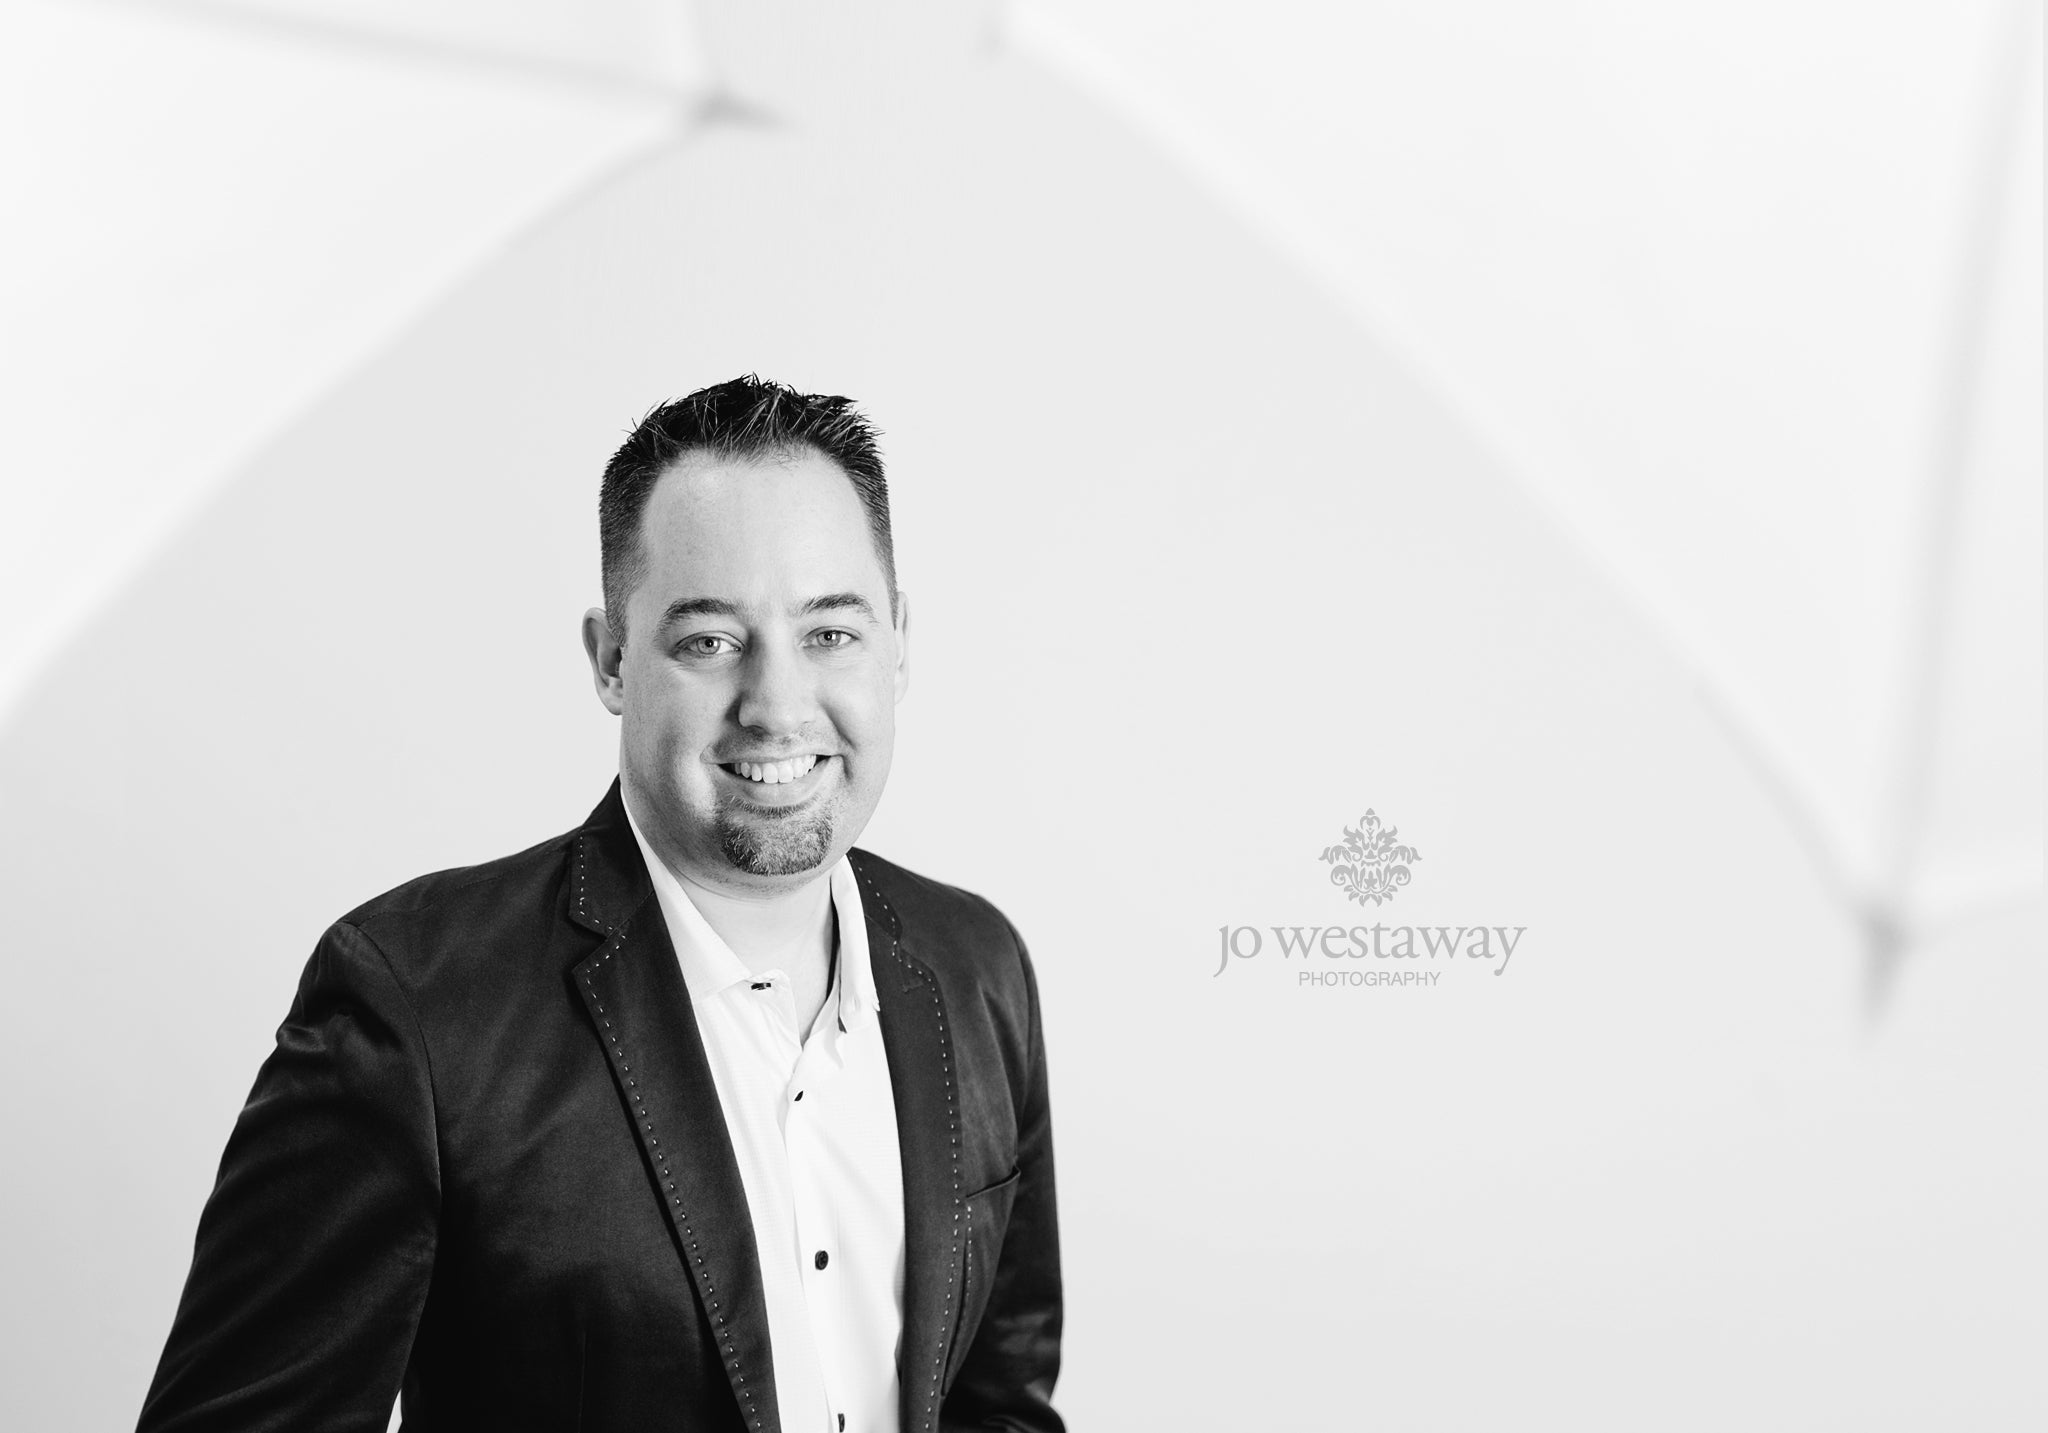 Personal branding photography for men - Jo Westaway Photography - Brisbane